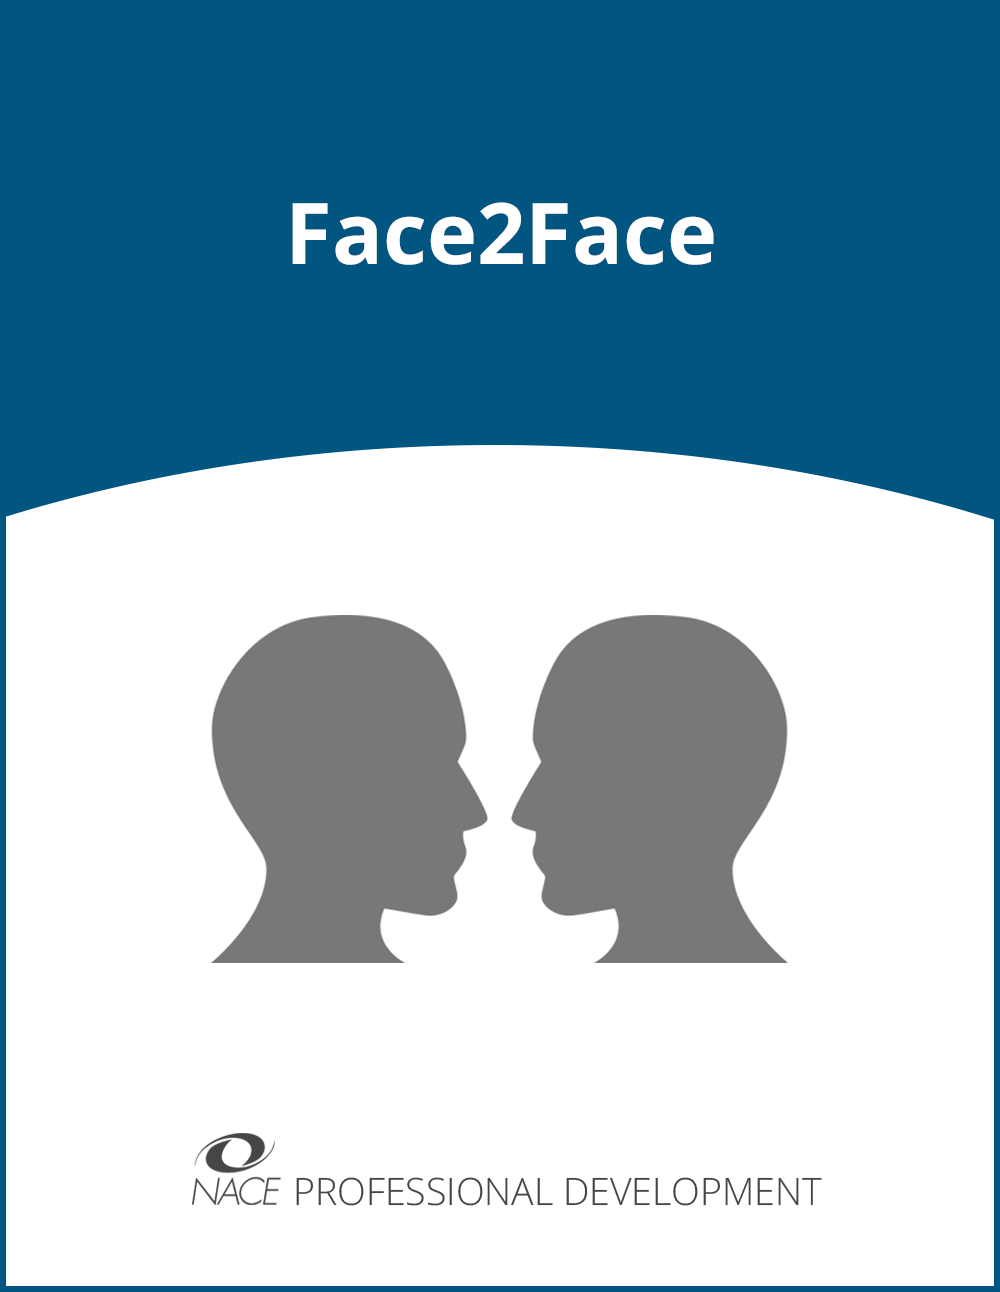 Face2Face: Chicago, IL